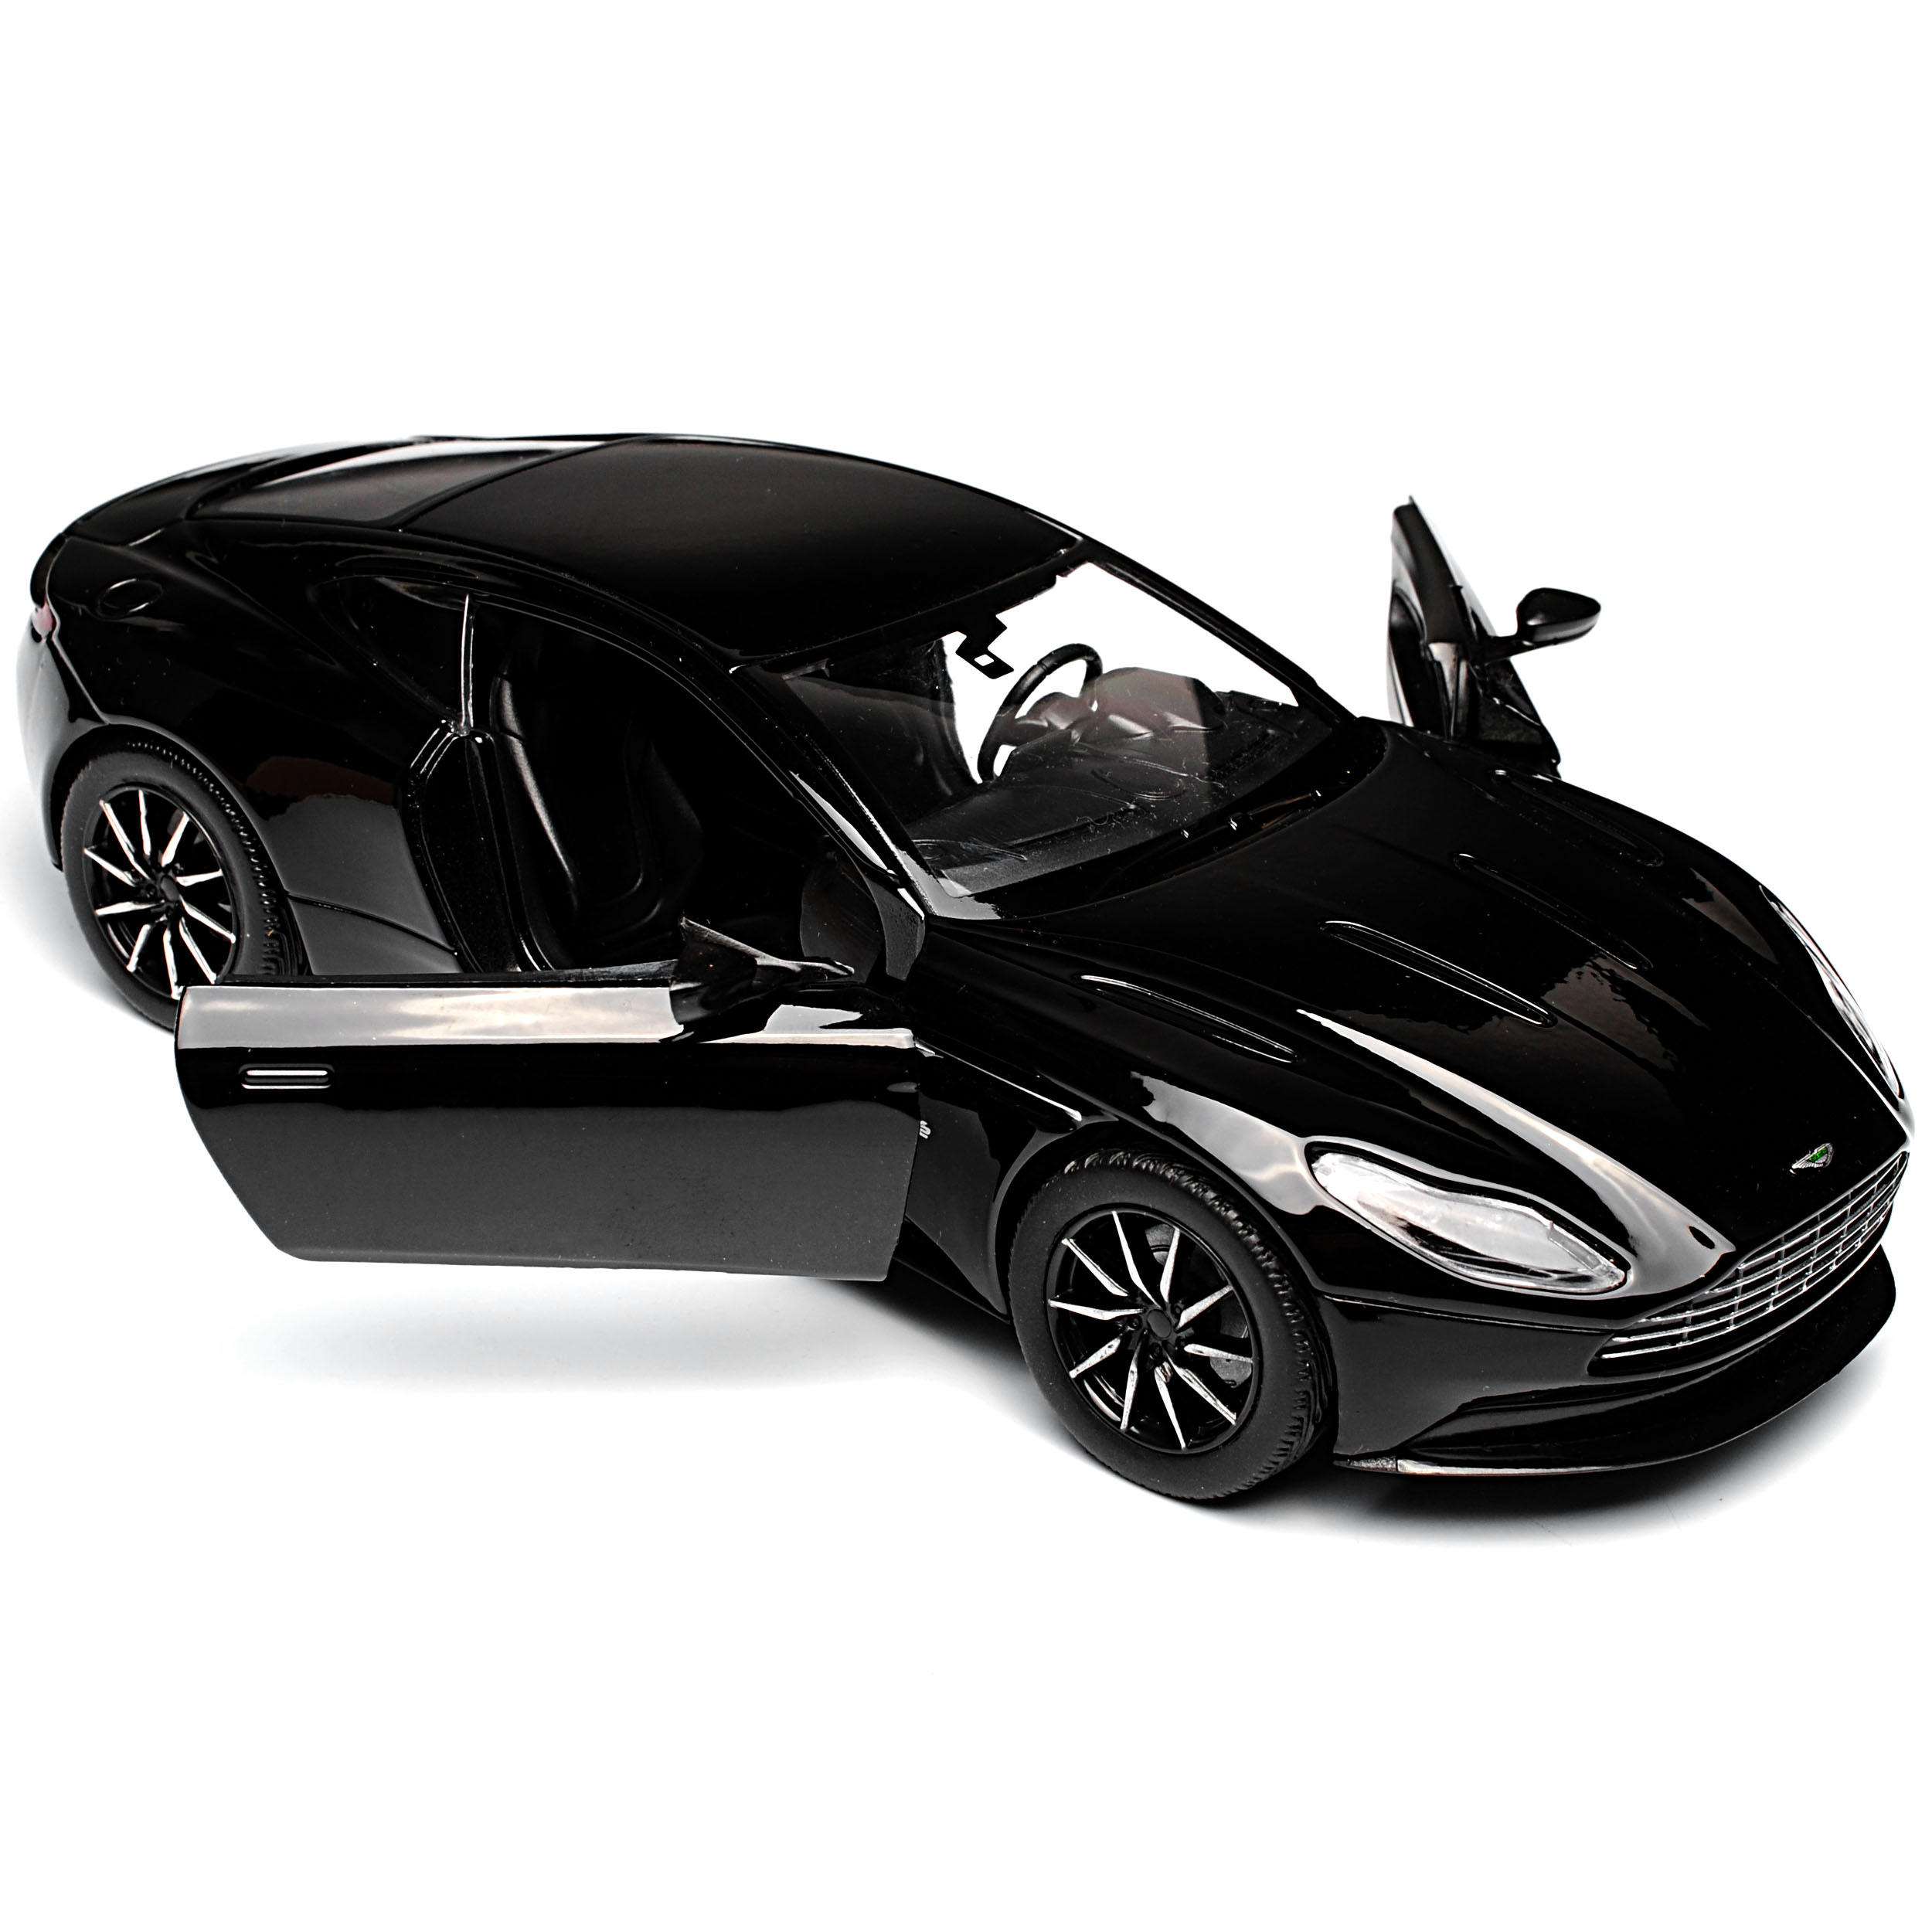 aston martin db11 coupe schwarz ab 2016 1 24 motormax. Black Bedroom Furniture Sets. Home Design Ideas